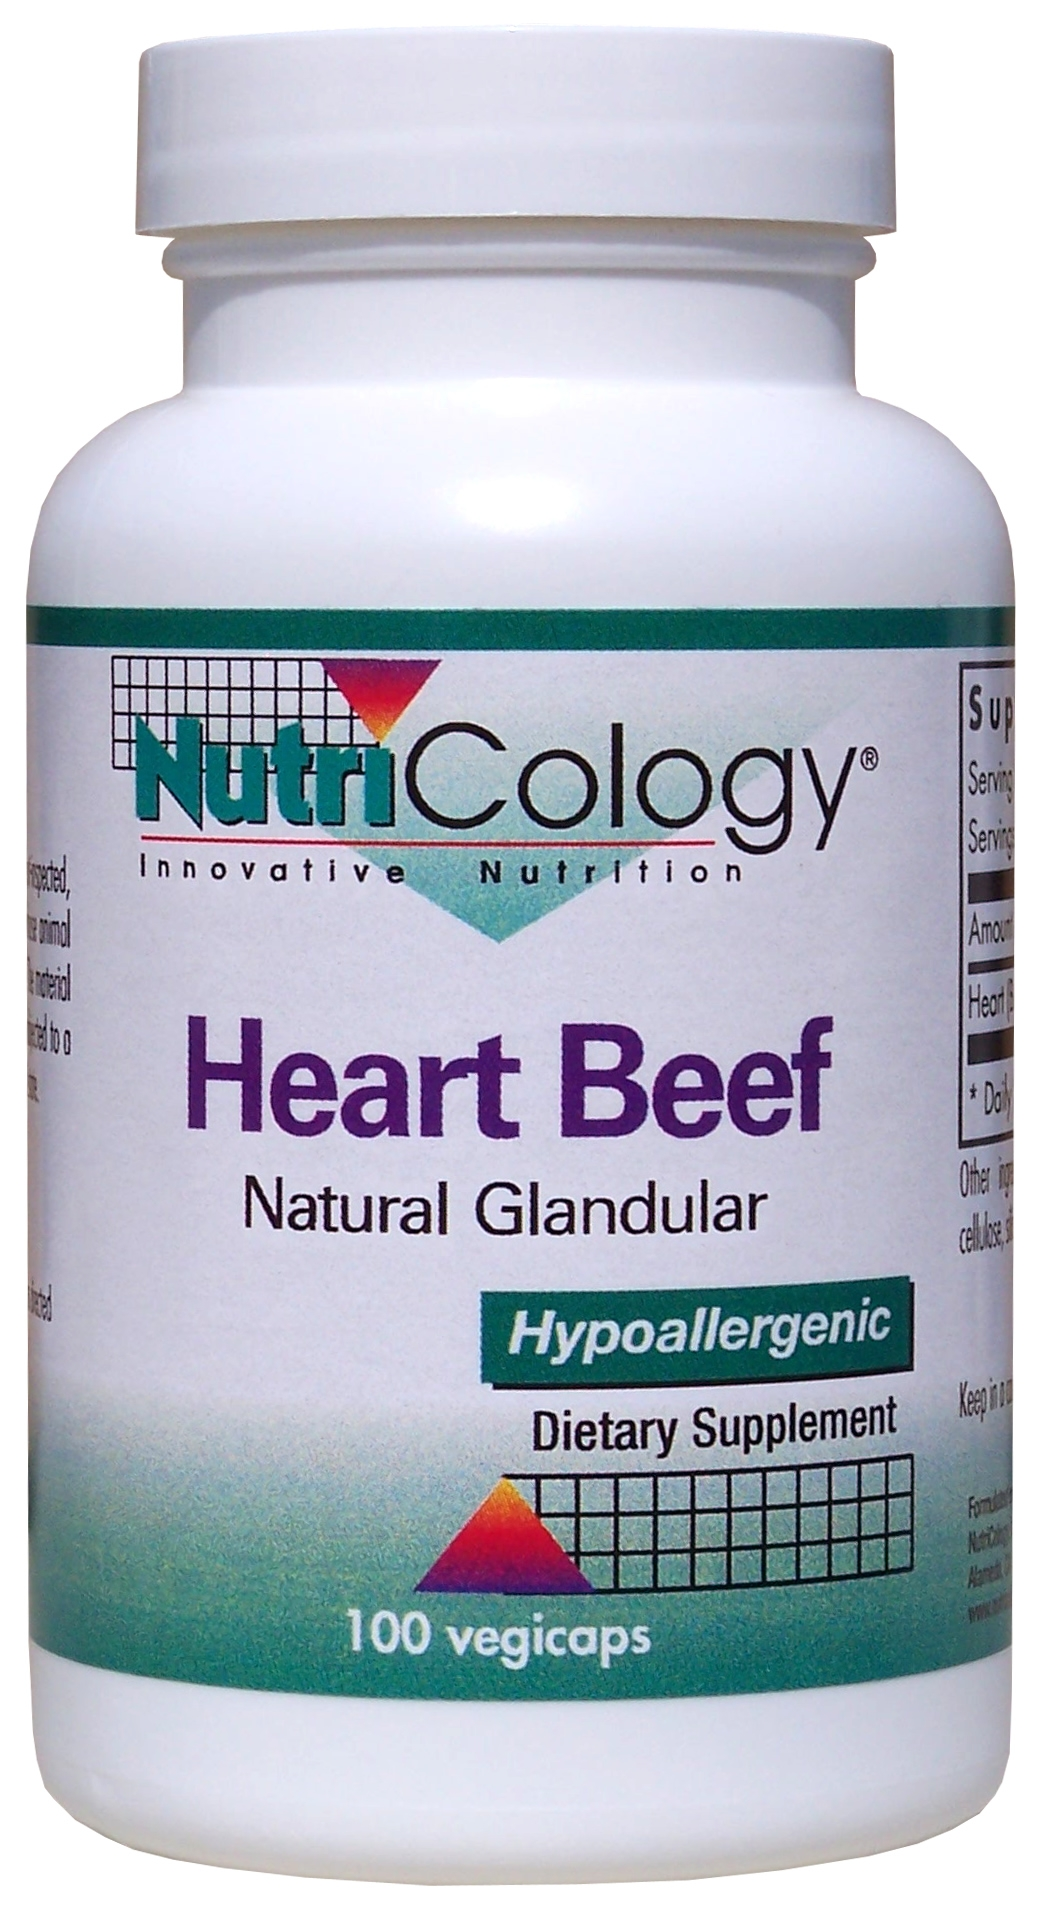 Heart Beef Natural Glandular 100 Vegicaps by Nutricology